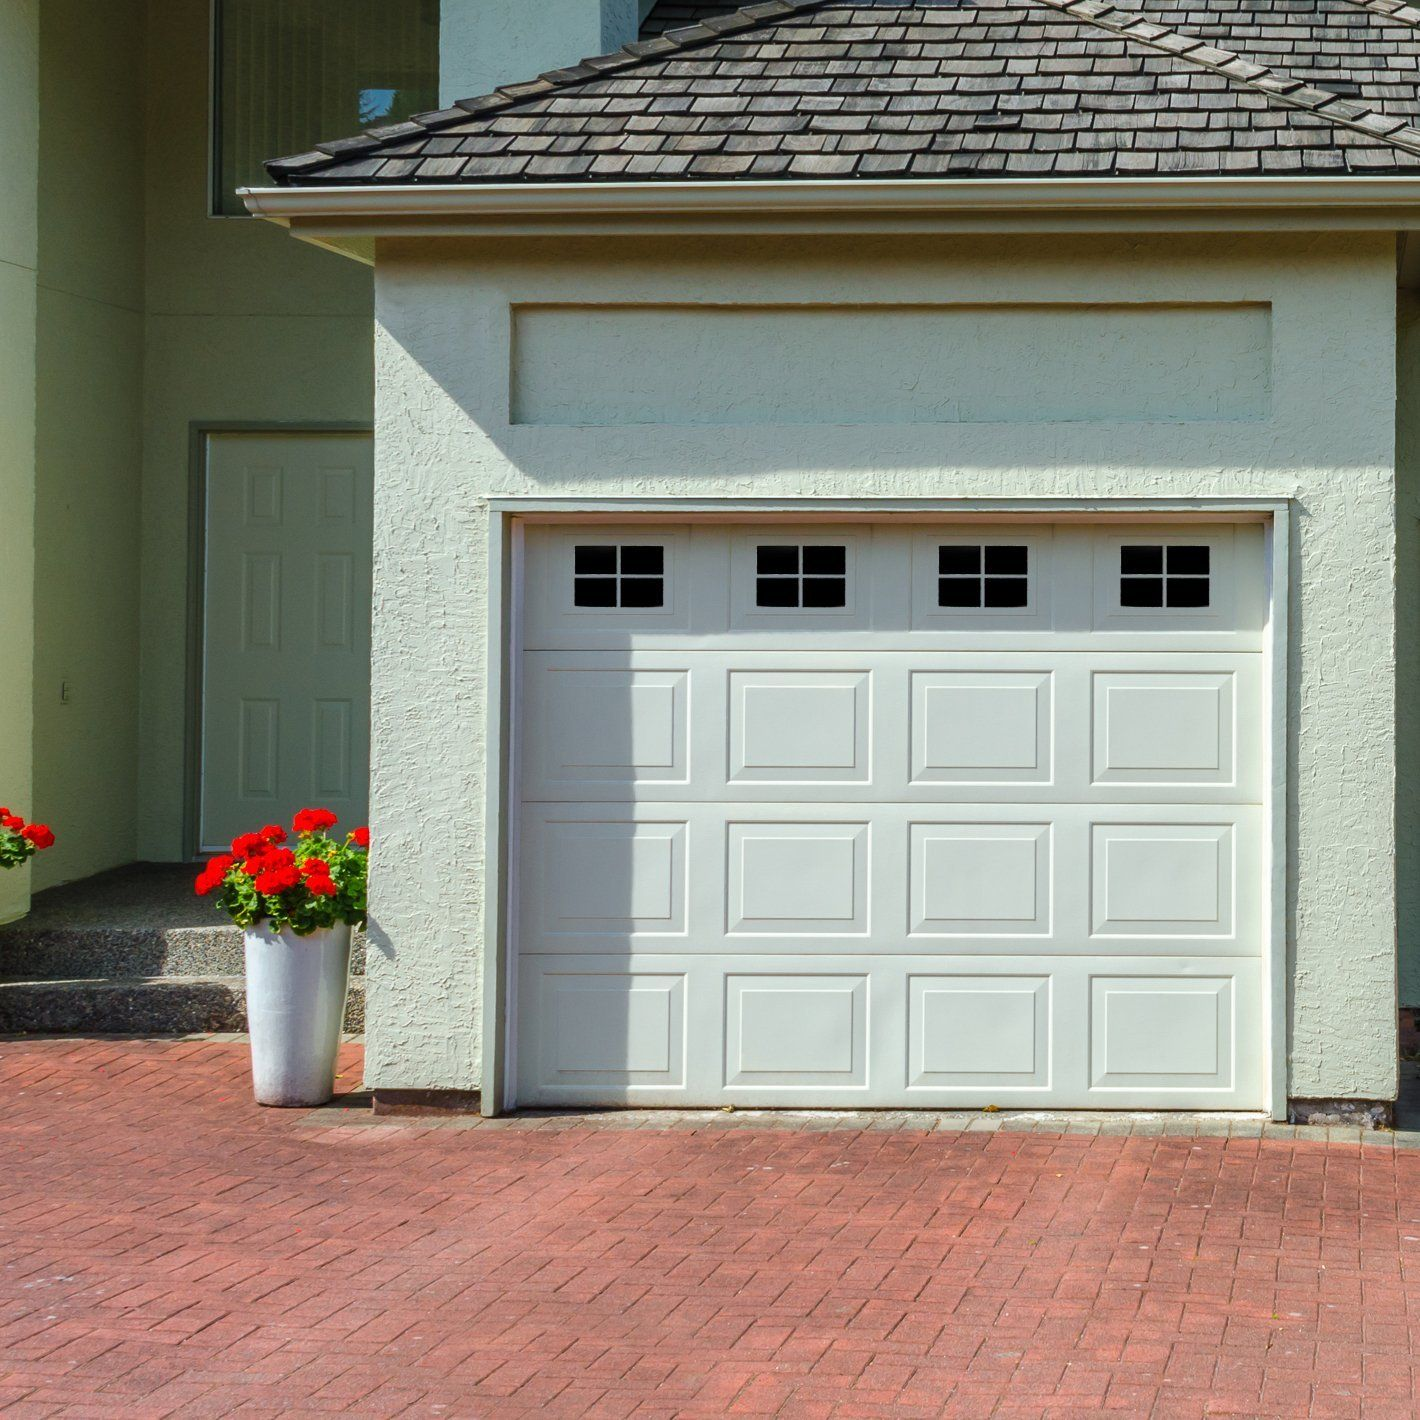 Carriage garage doors without windows  Decorative Magnetic Garage Door Window Panes Black  Car Garage